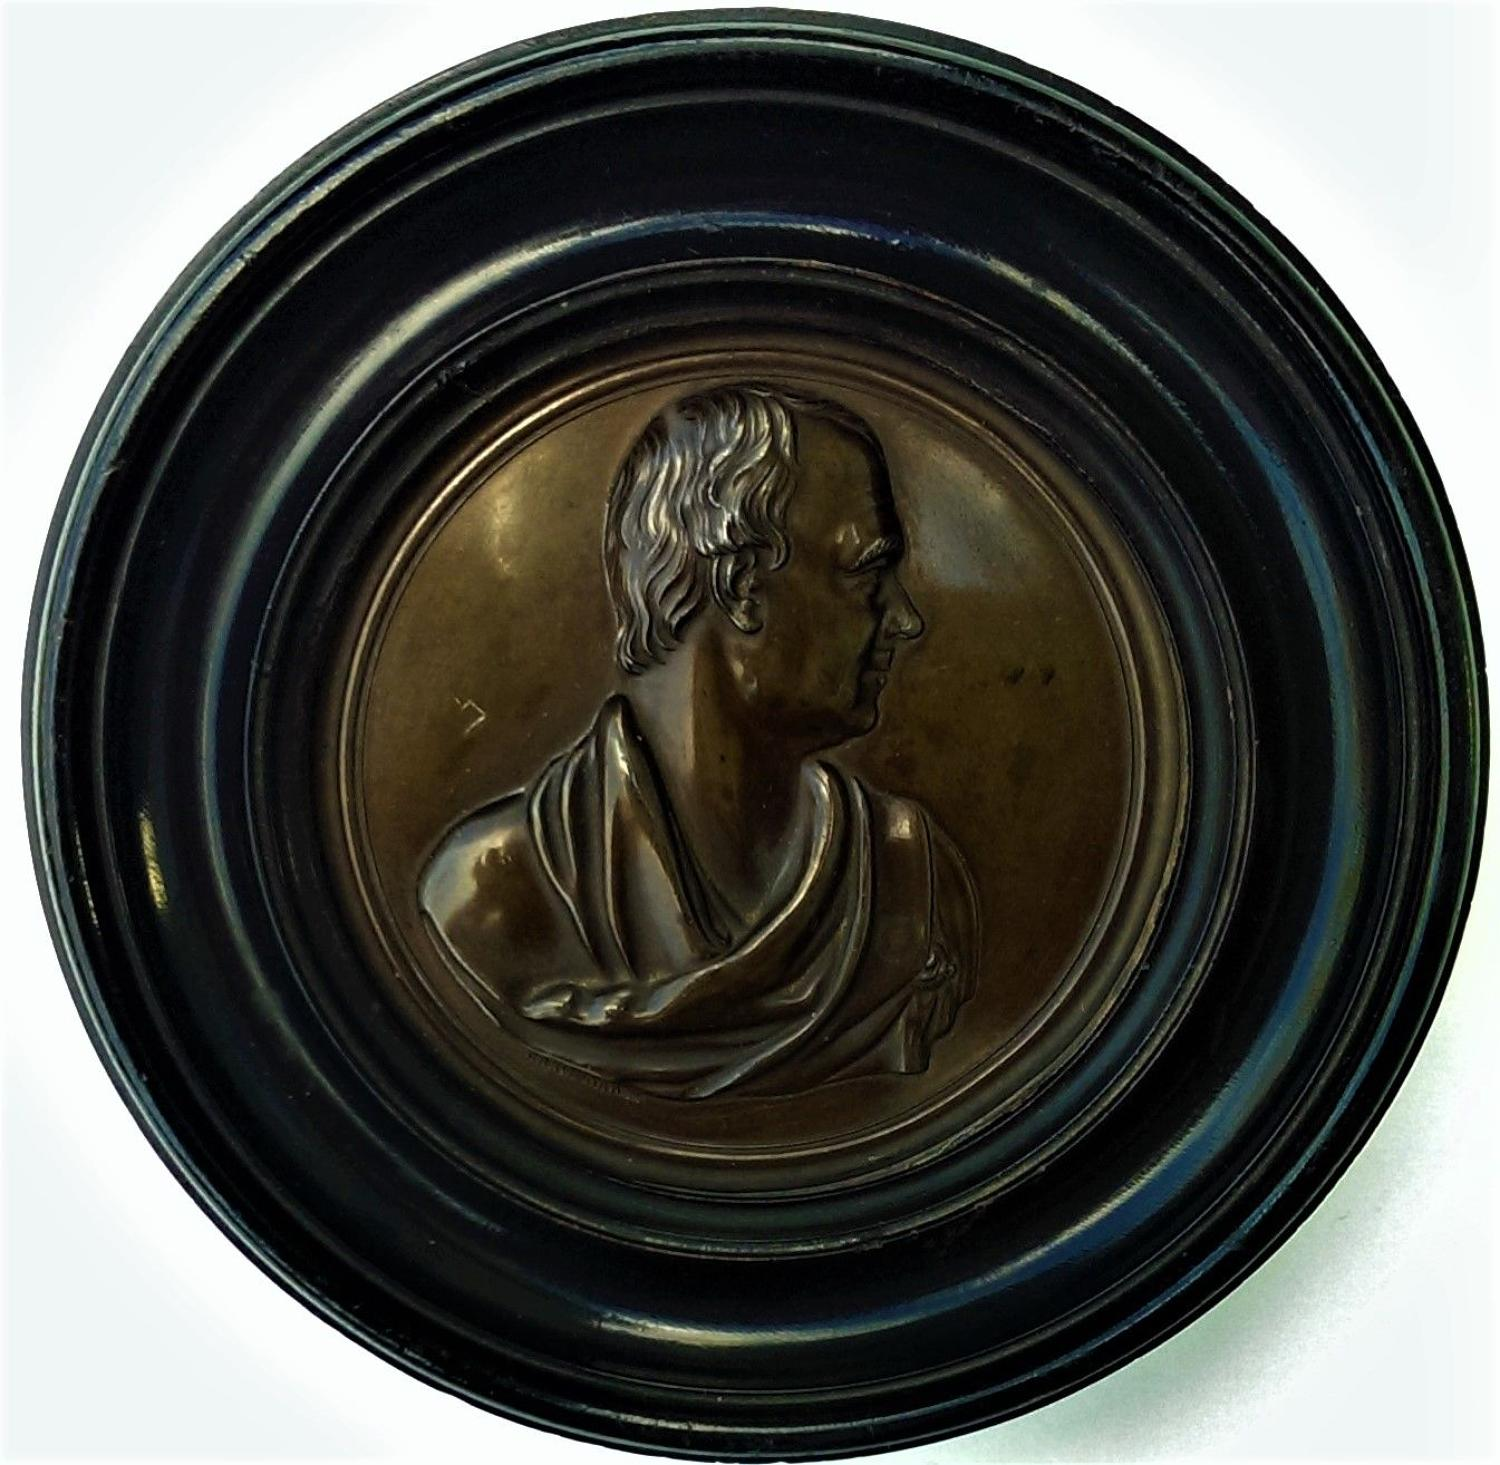 Sir Walter Scott (1771-1832), Portrait Plaque